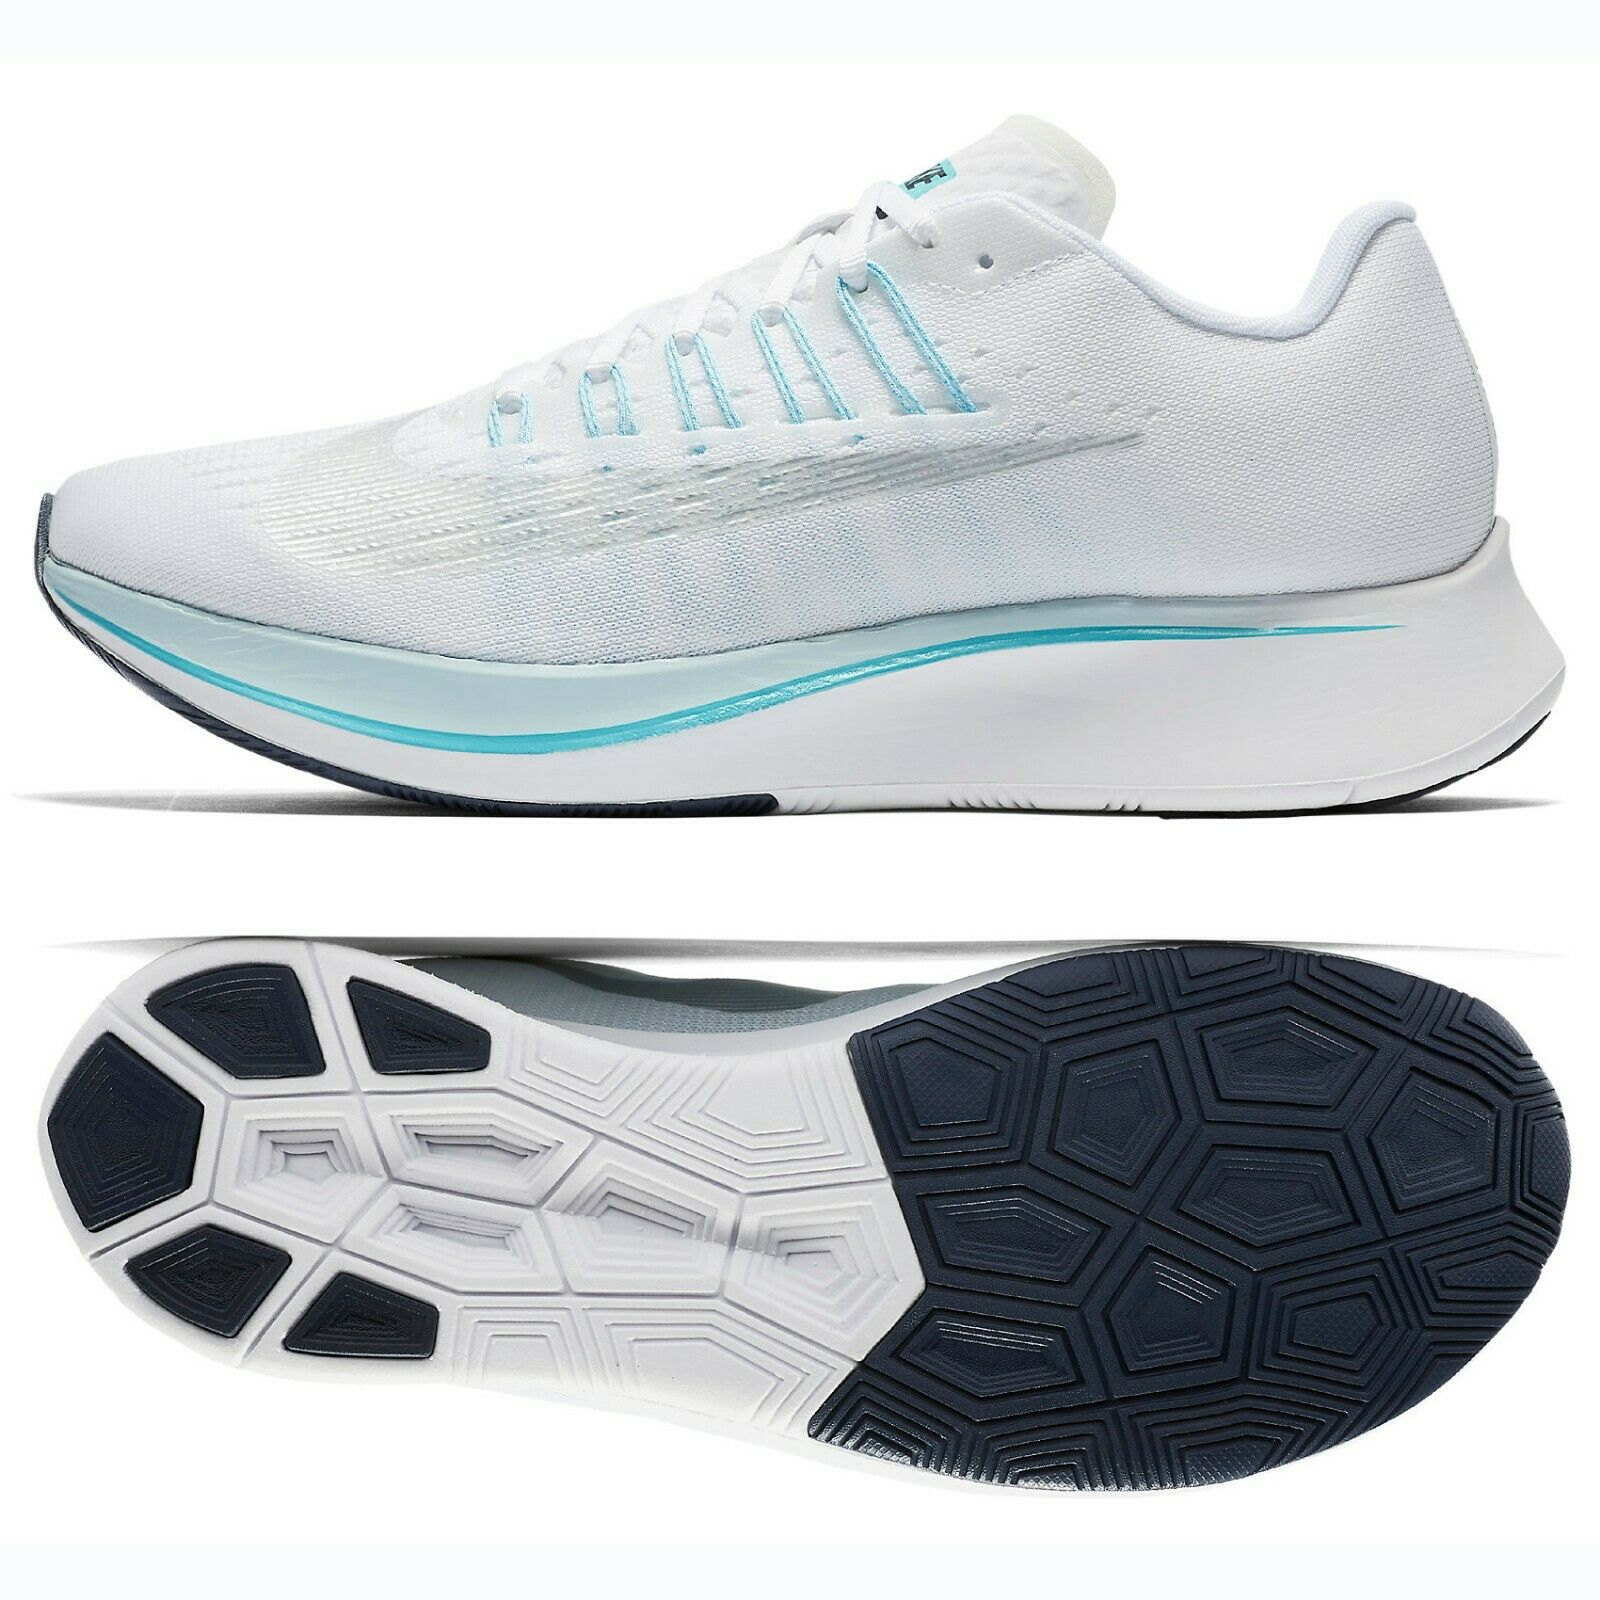 Nike WMNS Zoom Fly 897821-104 White Glacier bluee Silver Women's Running shoes